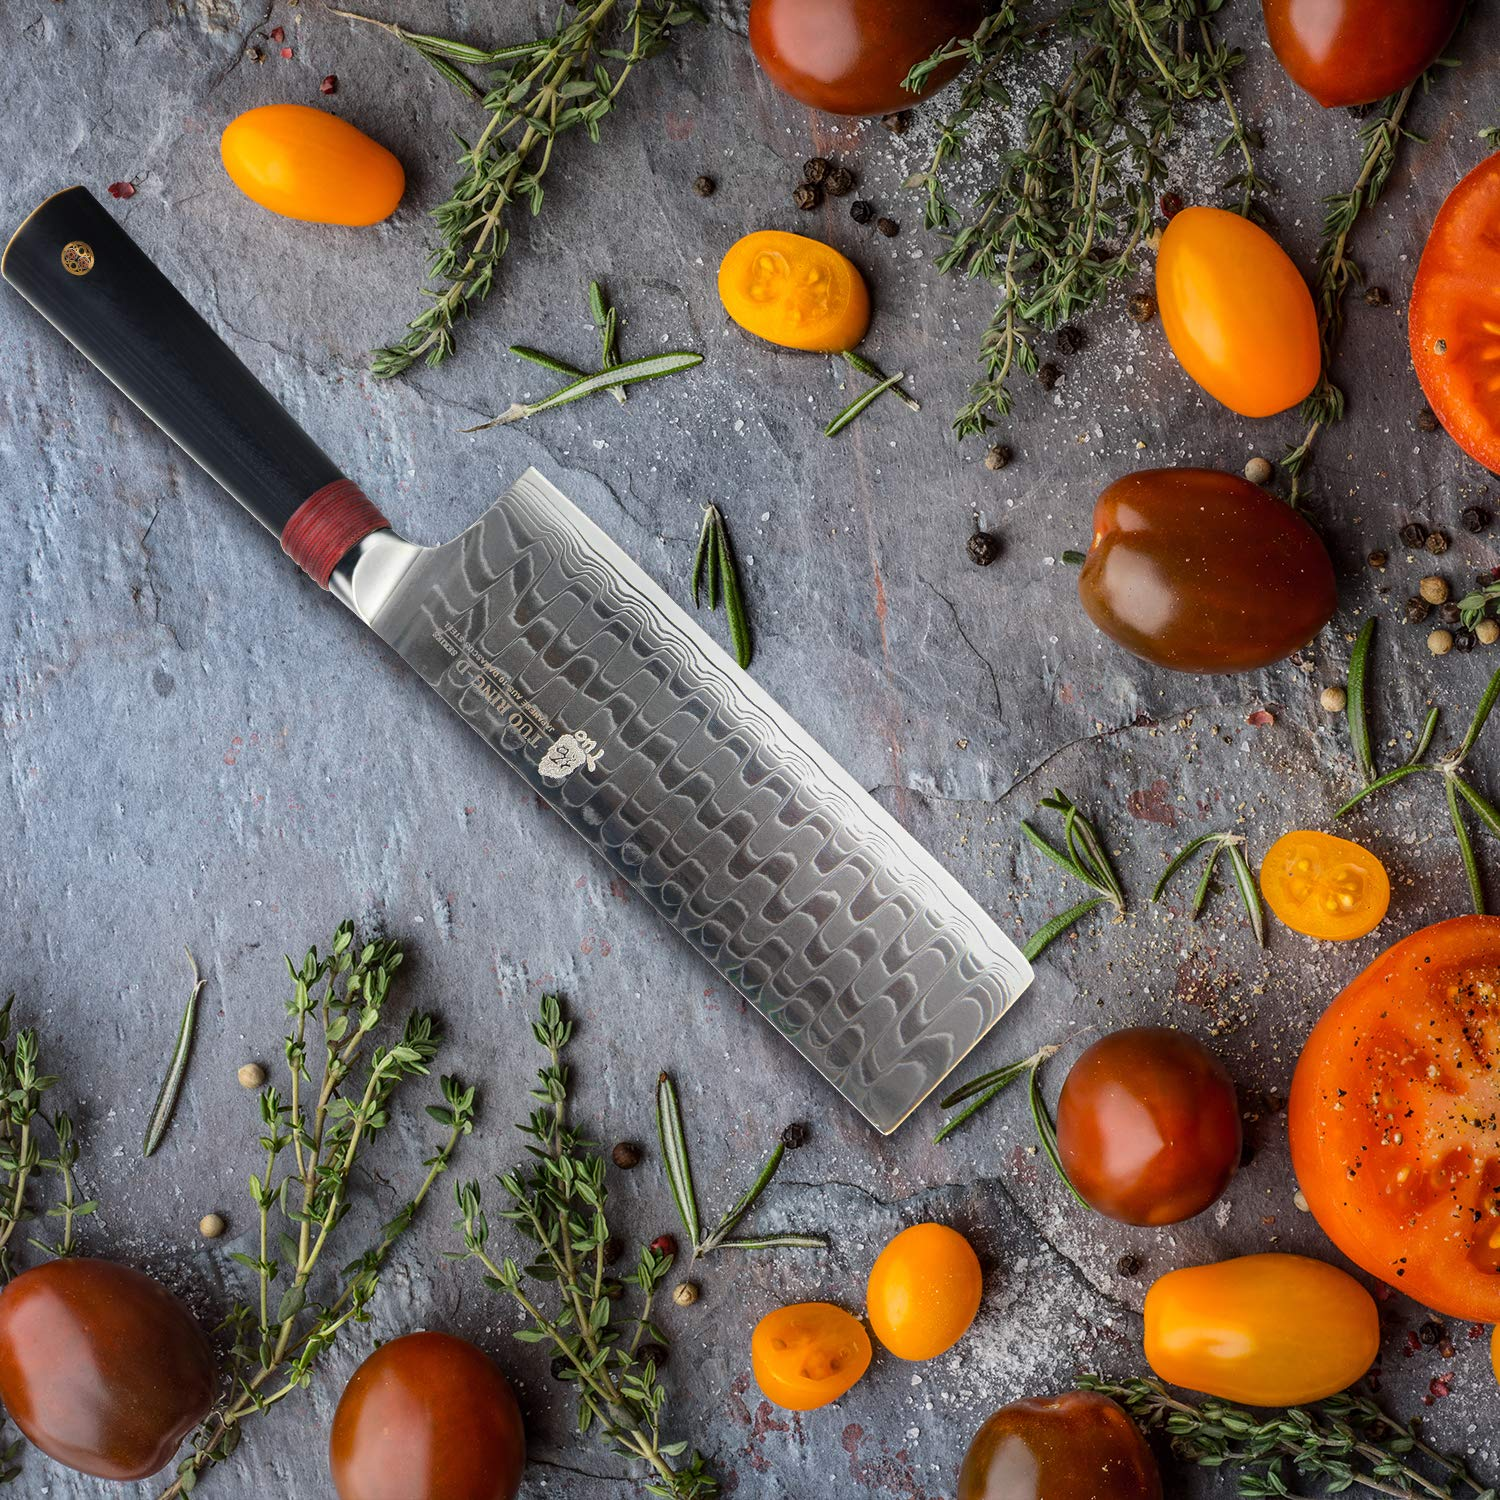 TUO Cutlery Nakiri Knife 6.5'' - Damascus Vegetable Cleaver Kitchen Knives - Japanese AUS-10 High Carbon Stainless Steel Cutting Core Blade - Damascus Pattern - G10 Handle - Gift Box - Ring-D Series by TUO (Image #6)